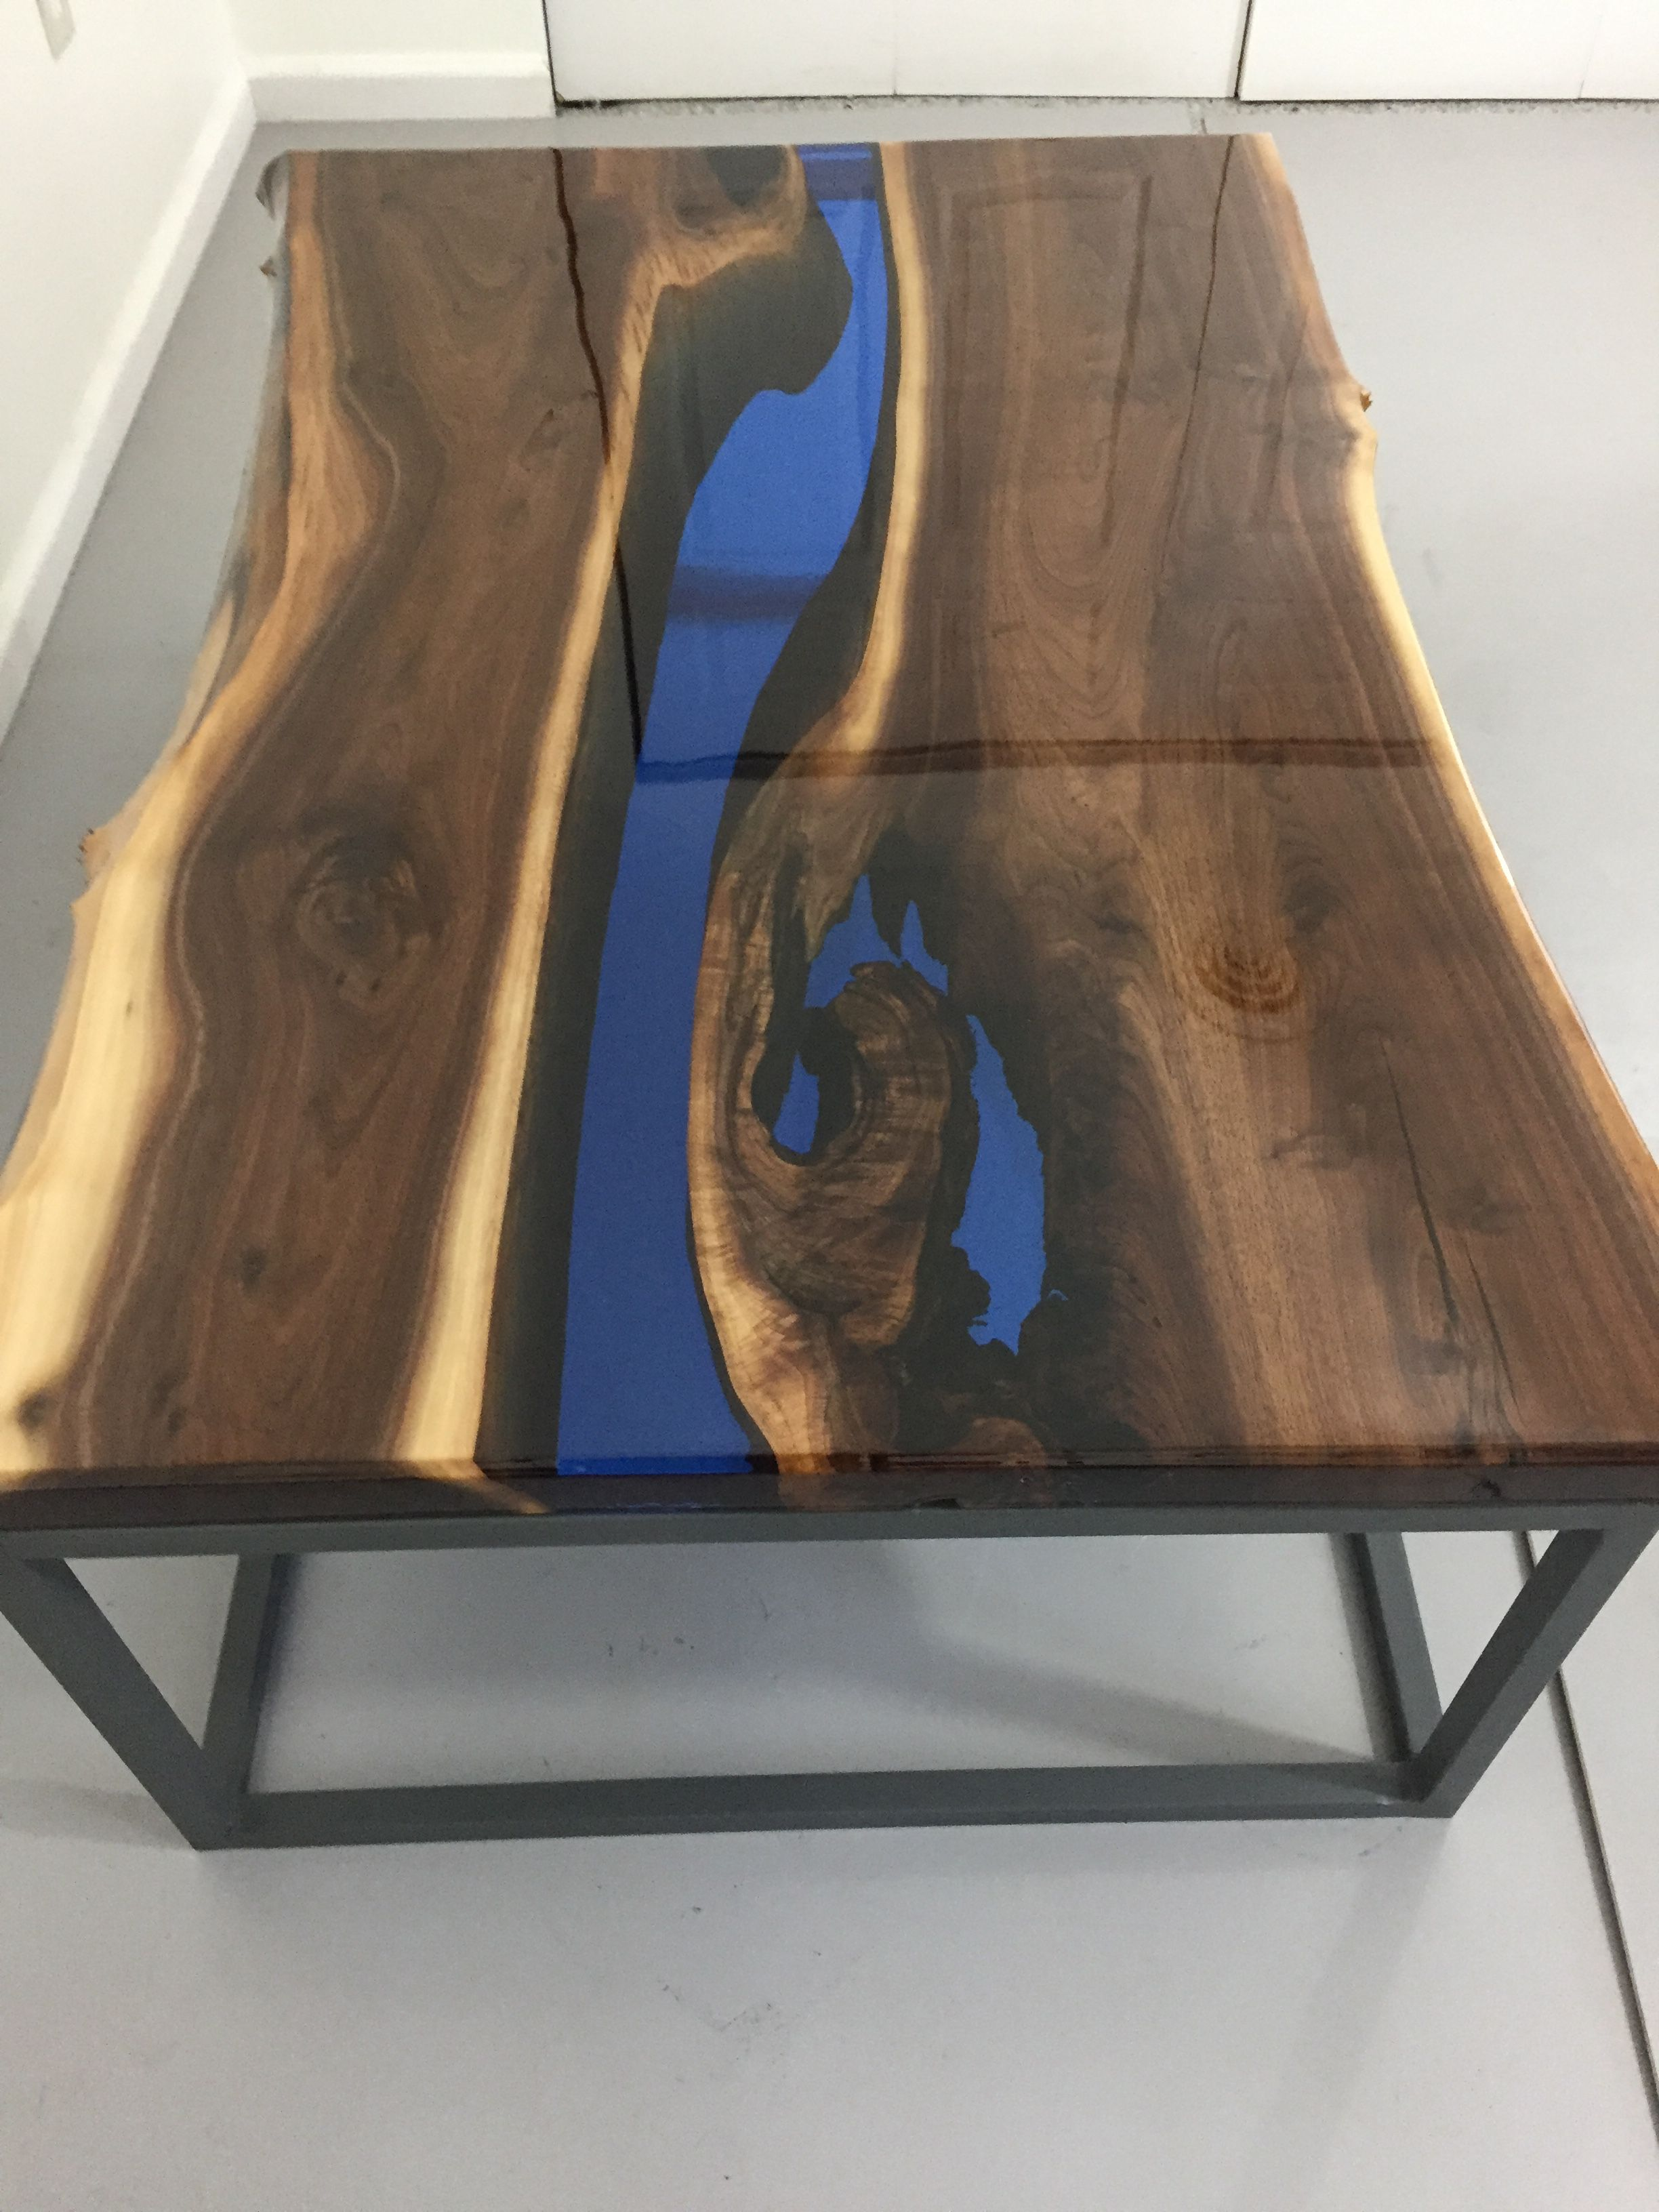 Epingle Par Khalid El Khalidi Sur Casting Resin Meubles En Resine Table Basse Table De Resine